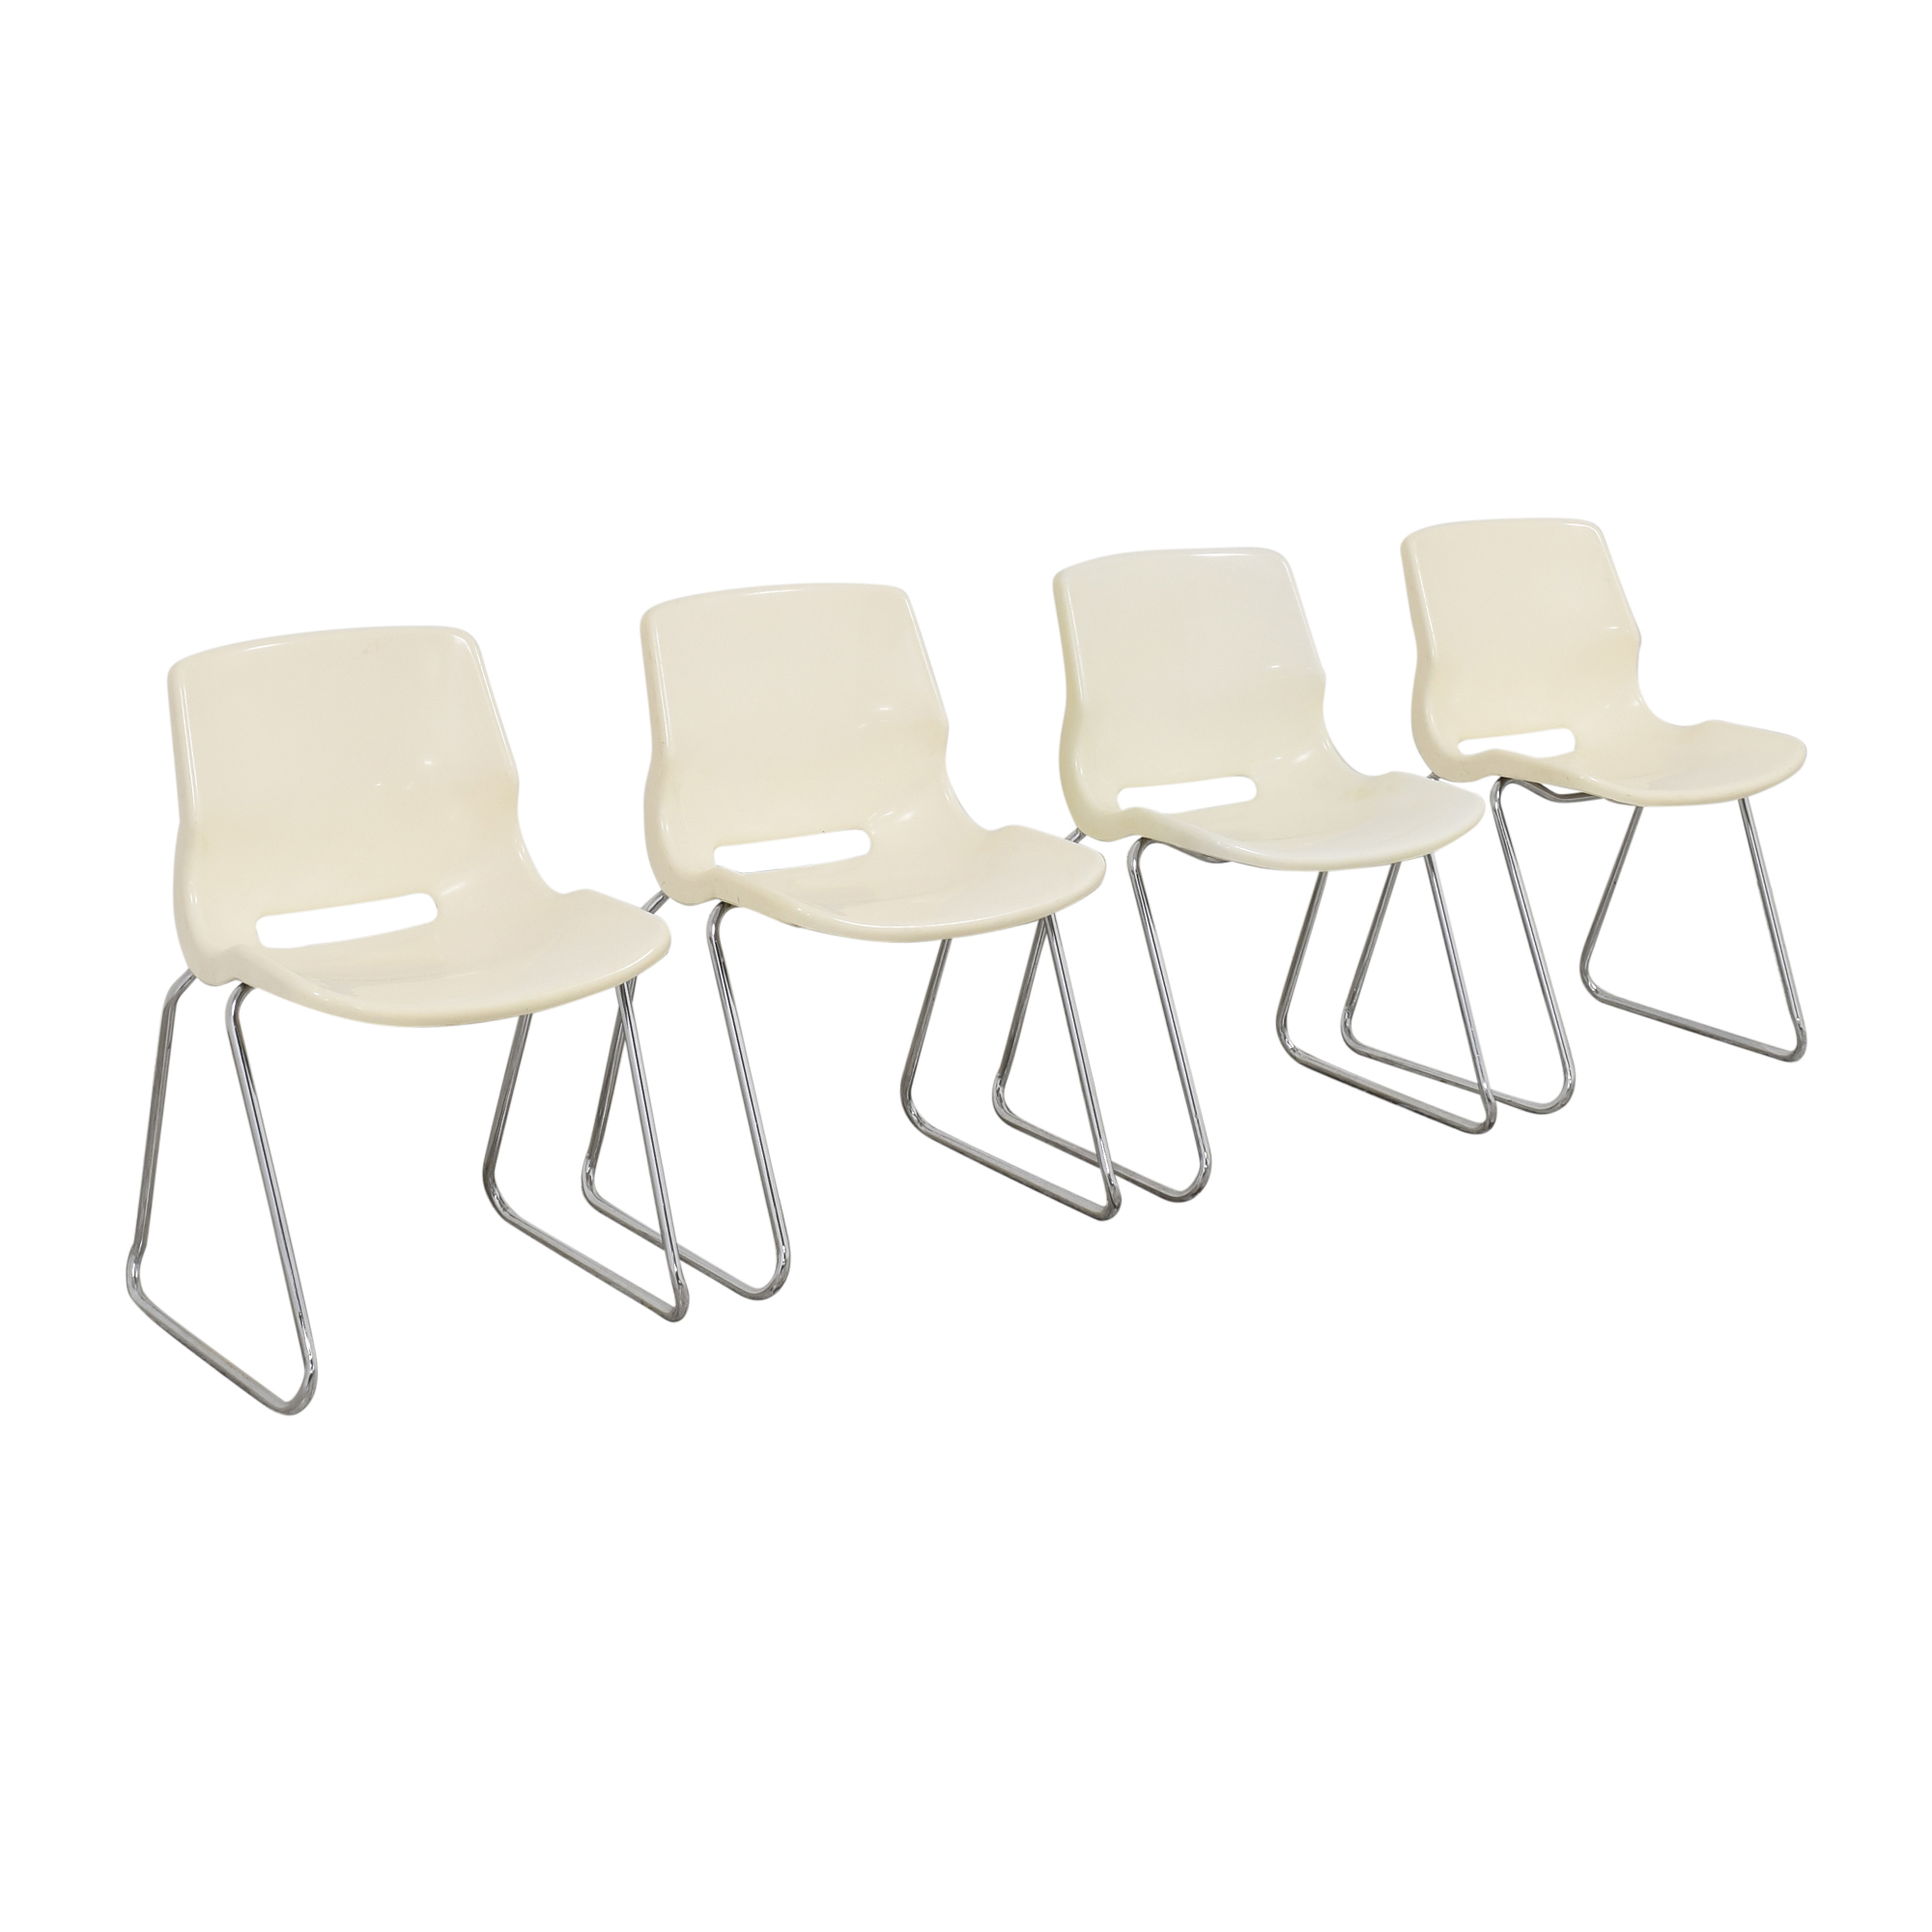 Overman Overman by Svante Schoblom Swedish Stacking Dining Chairs ct